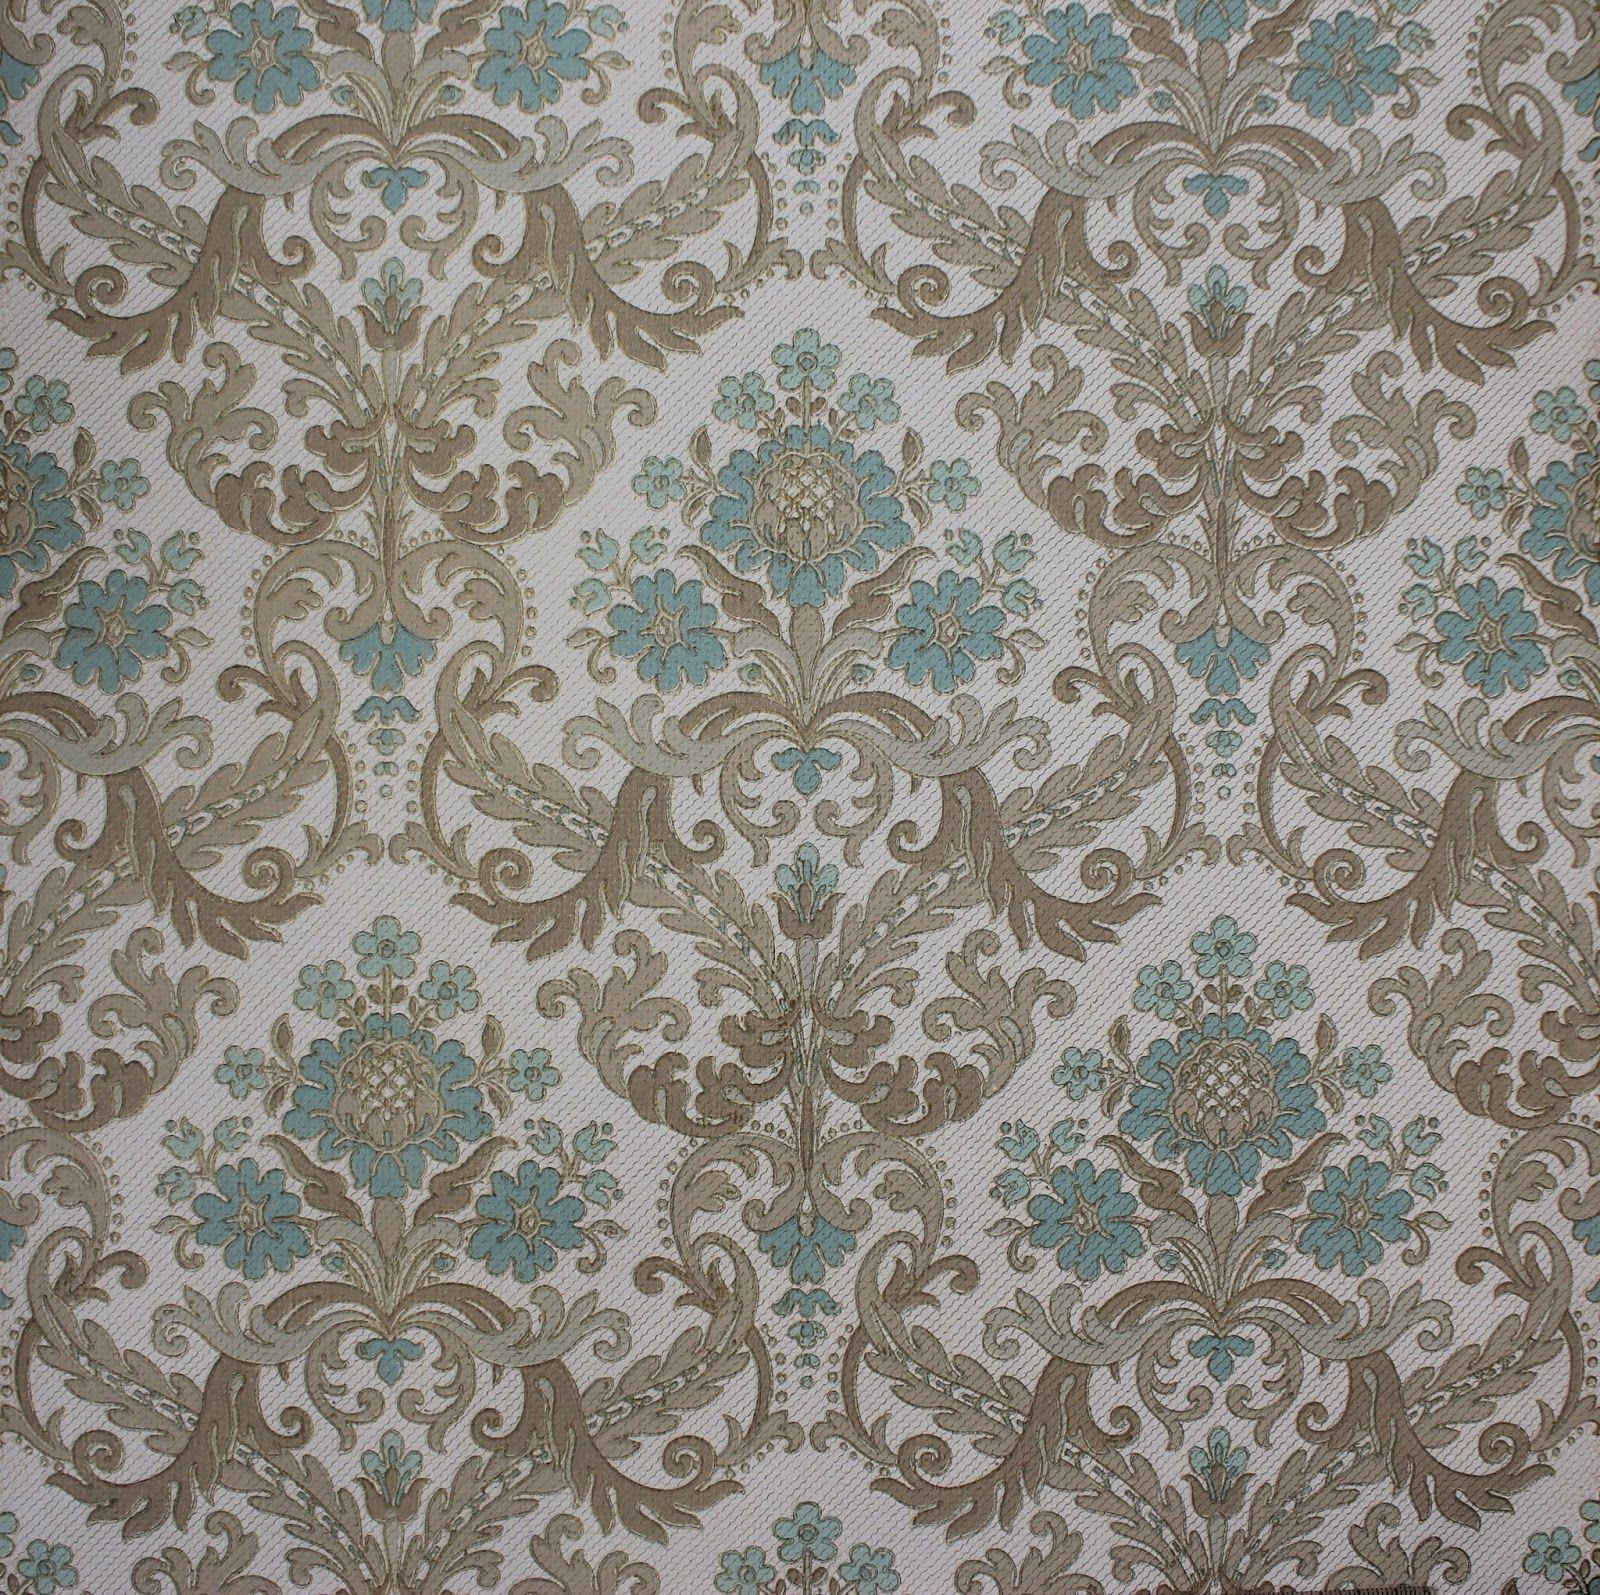 Find This Pin And More On Wallpapers This Week My Focus Has Been On Listing Vintage Damask Wallpaper On Etsy